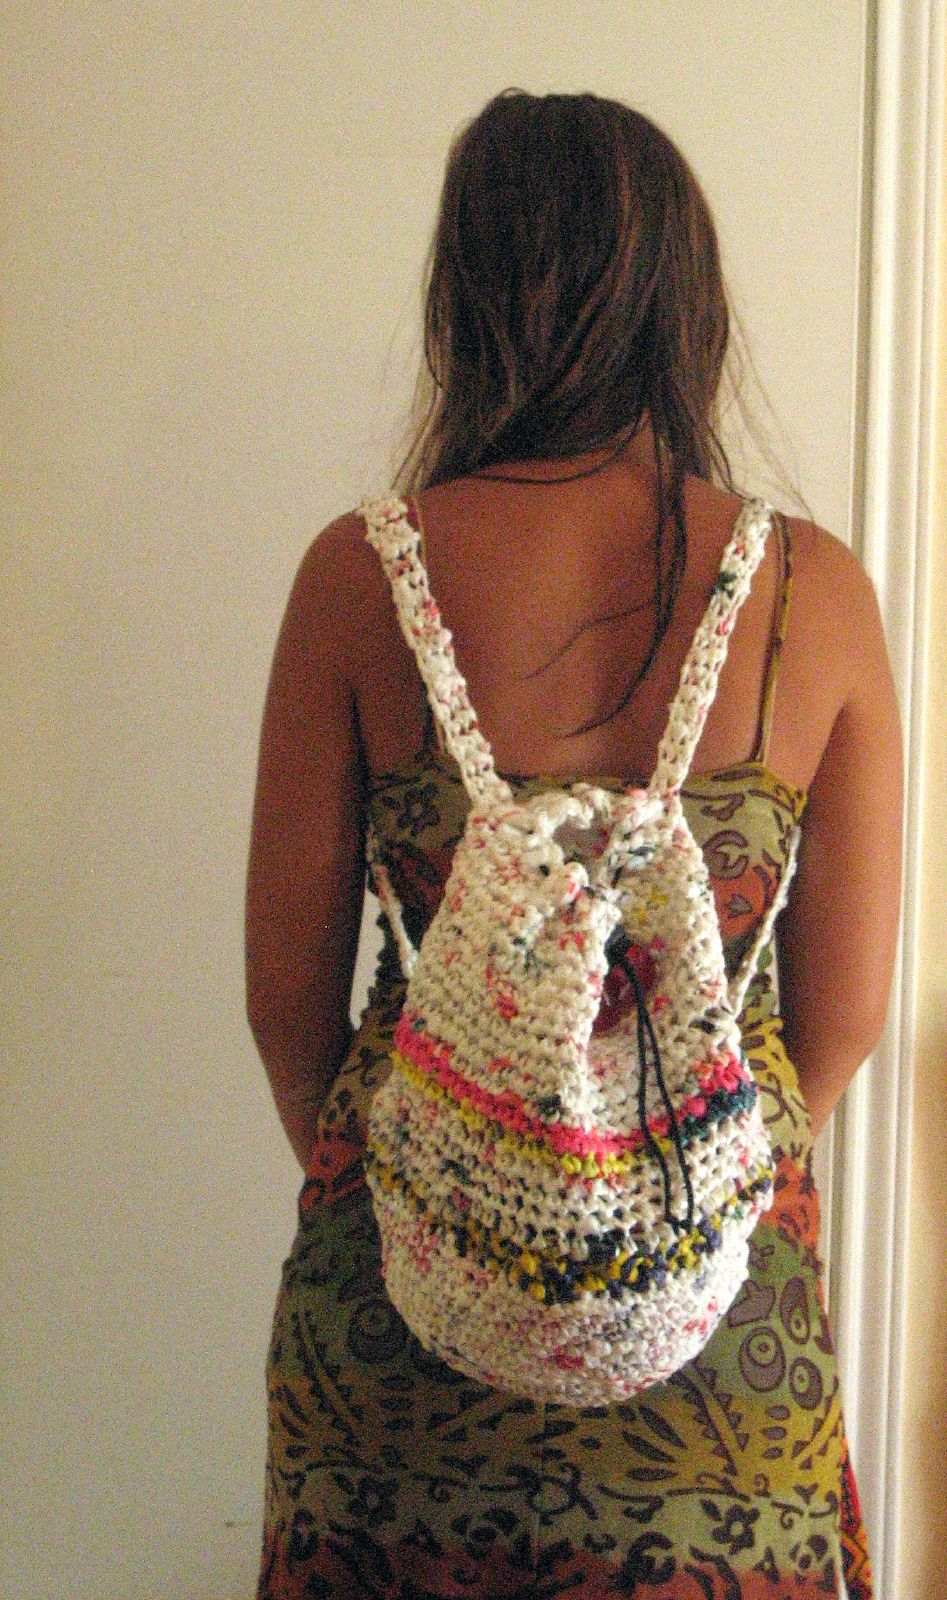 Crocheting Using Plastic Bags : Published July 23, 2012 at 947 ? 1600 in Plastic Bag Creations